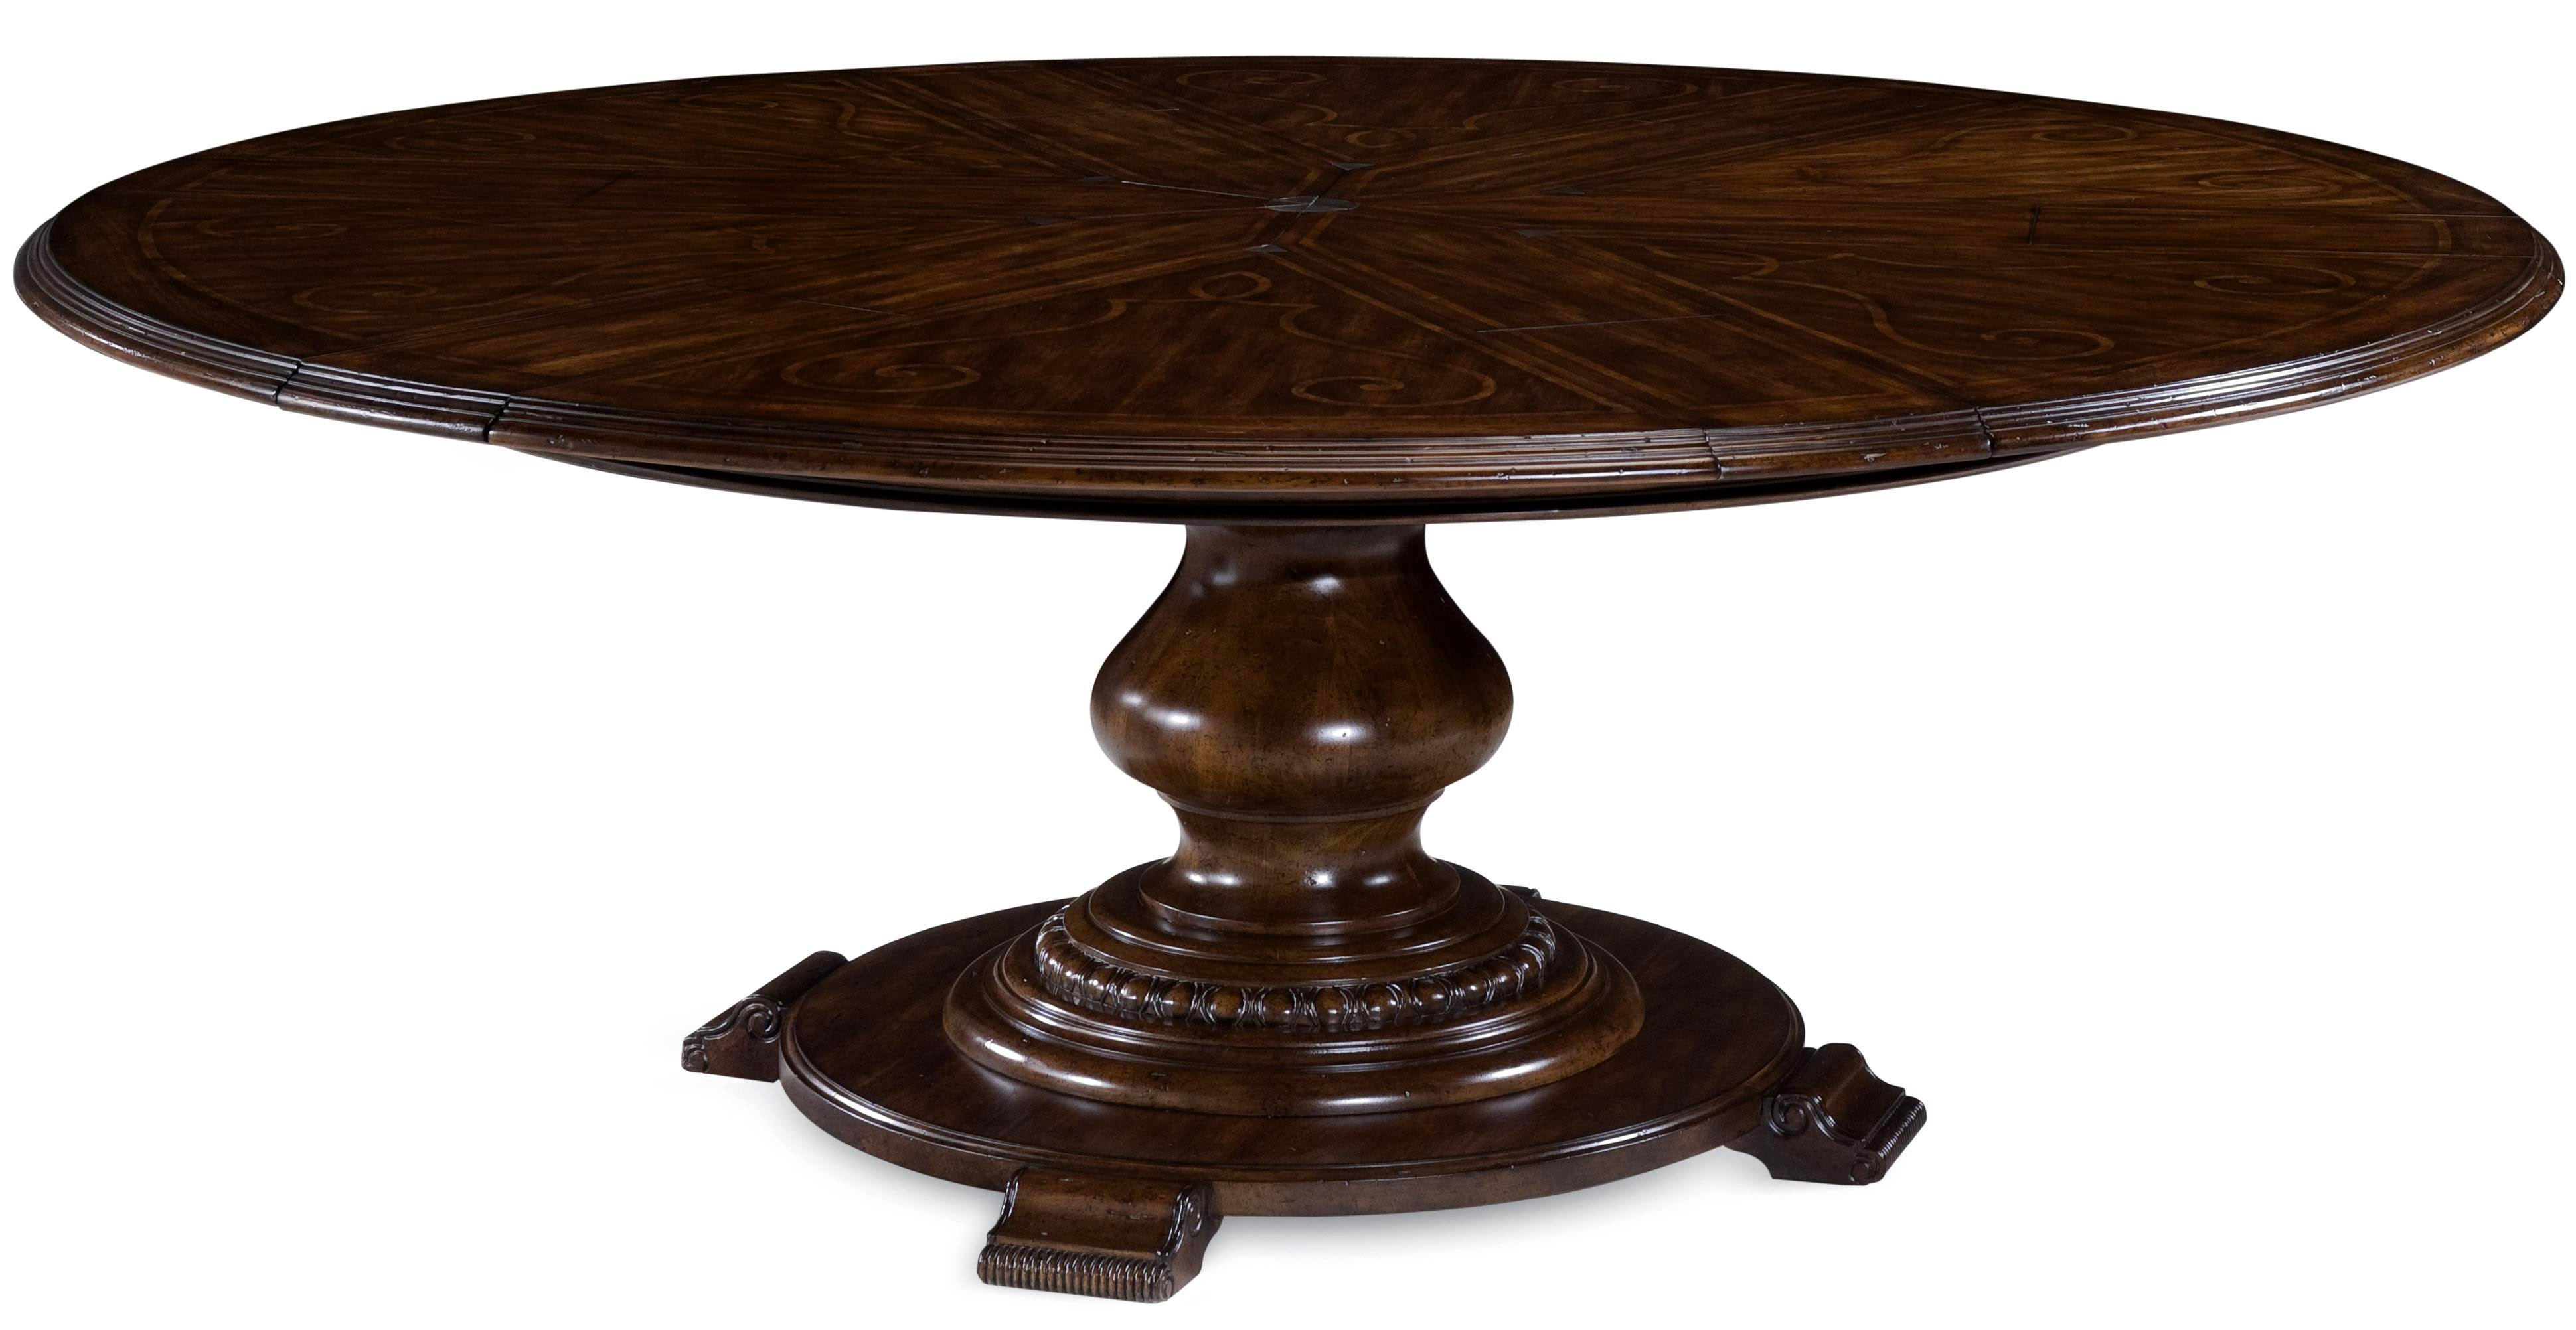 round dining table clip art conference table w self storing leaves this unique round dining table 3880x2004